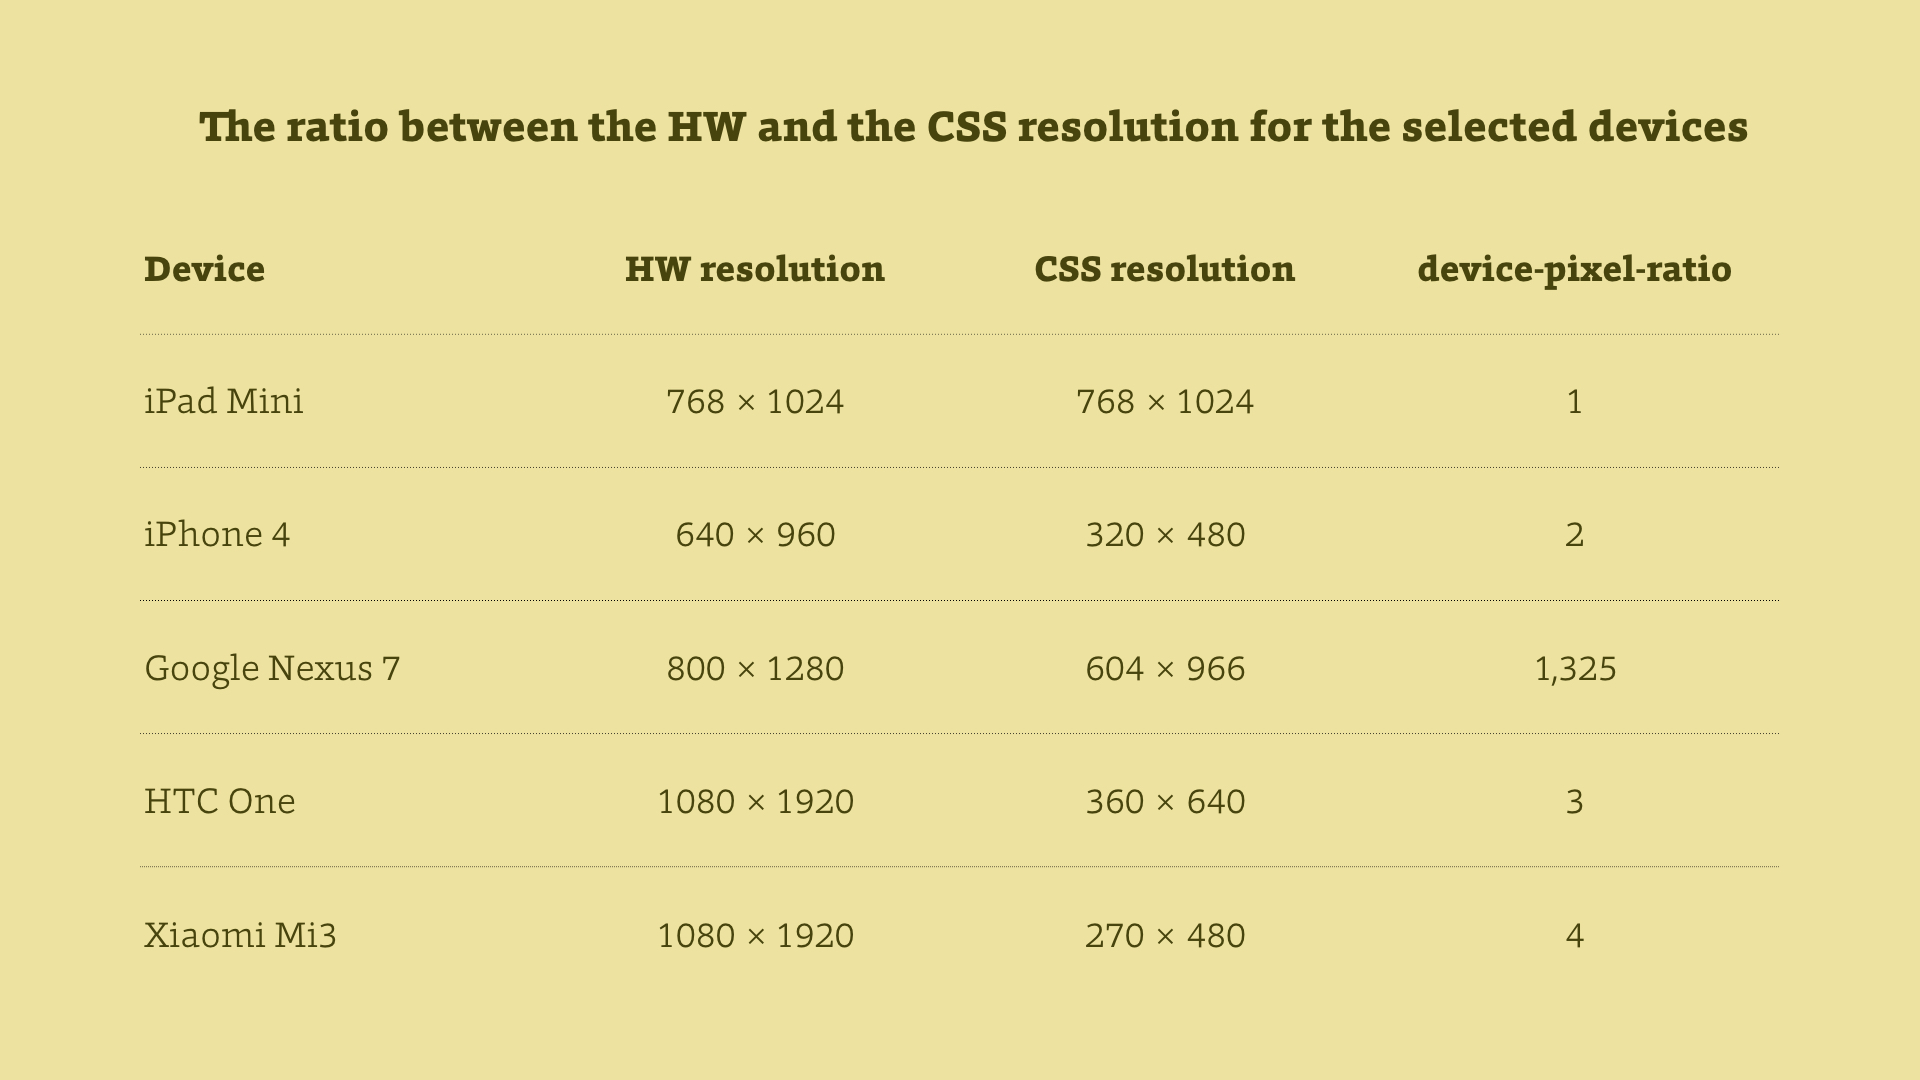 HW to CSS resolution ratio of selected devices